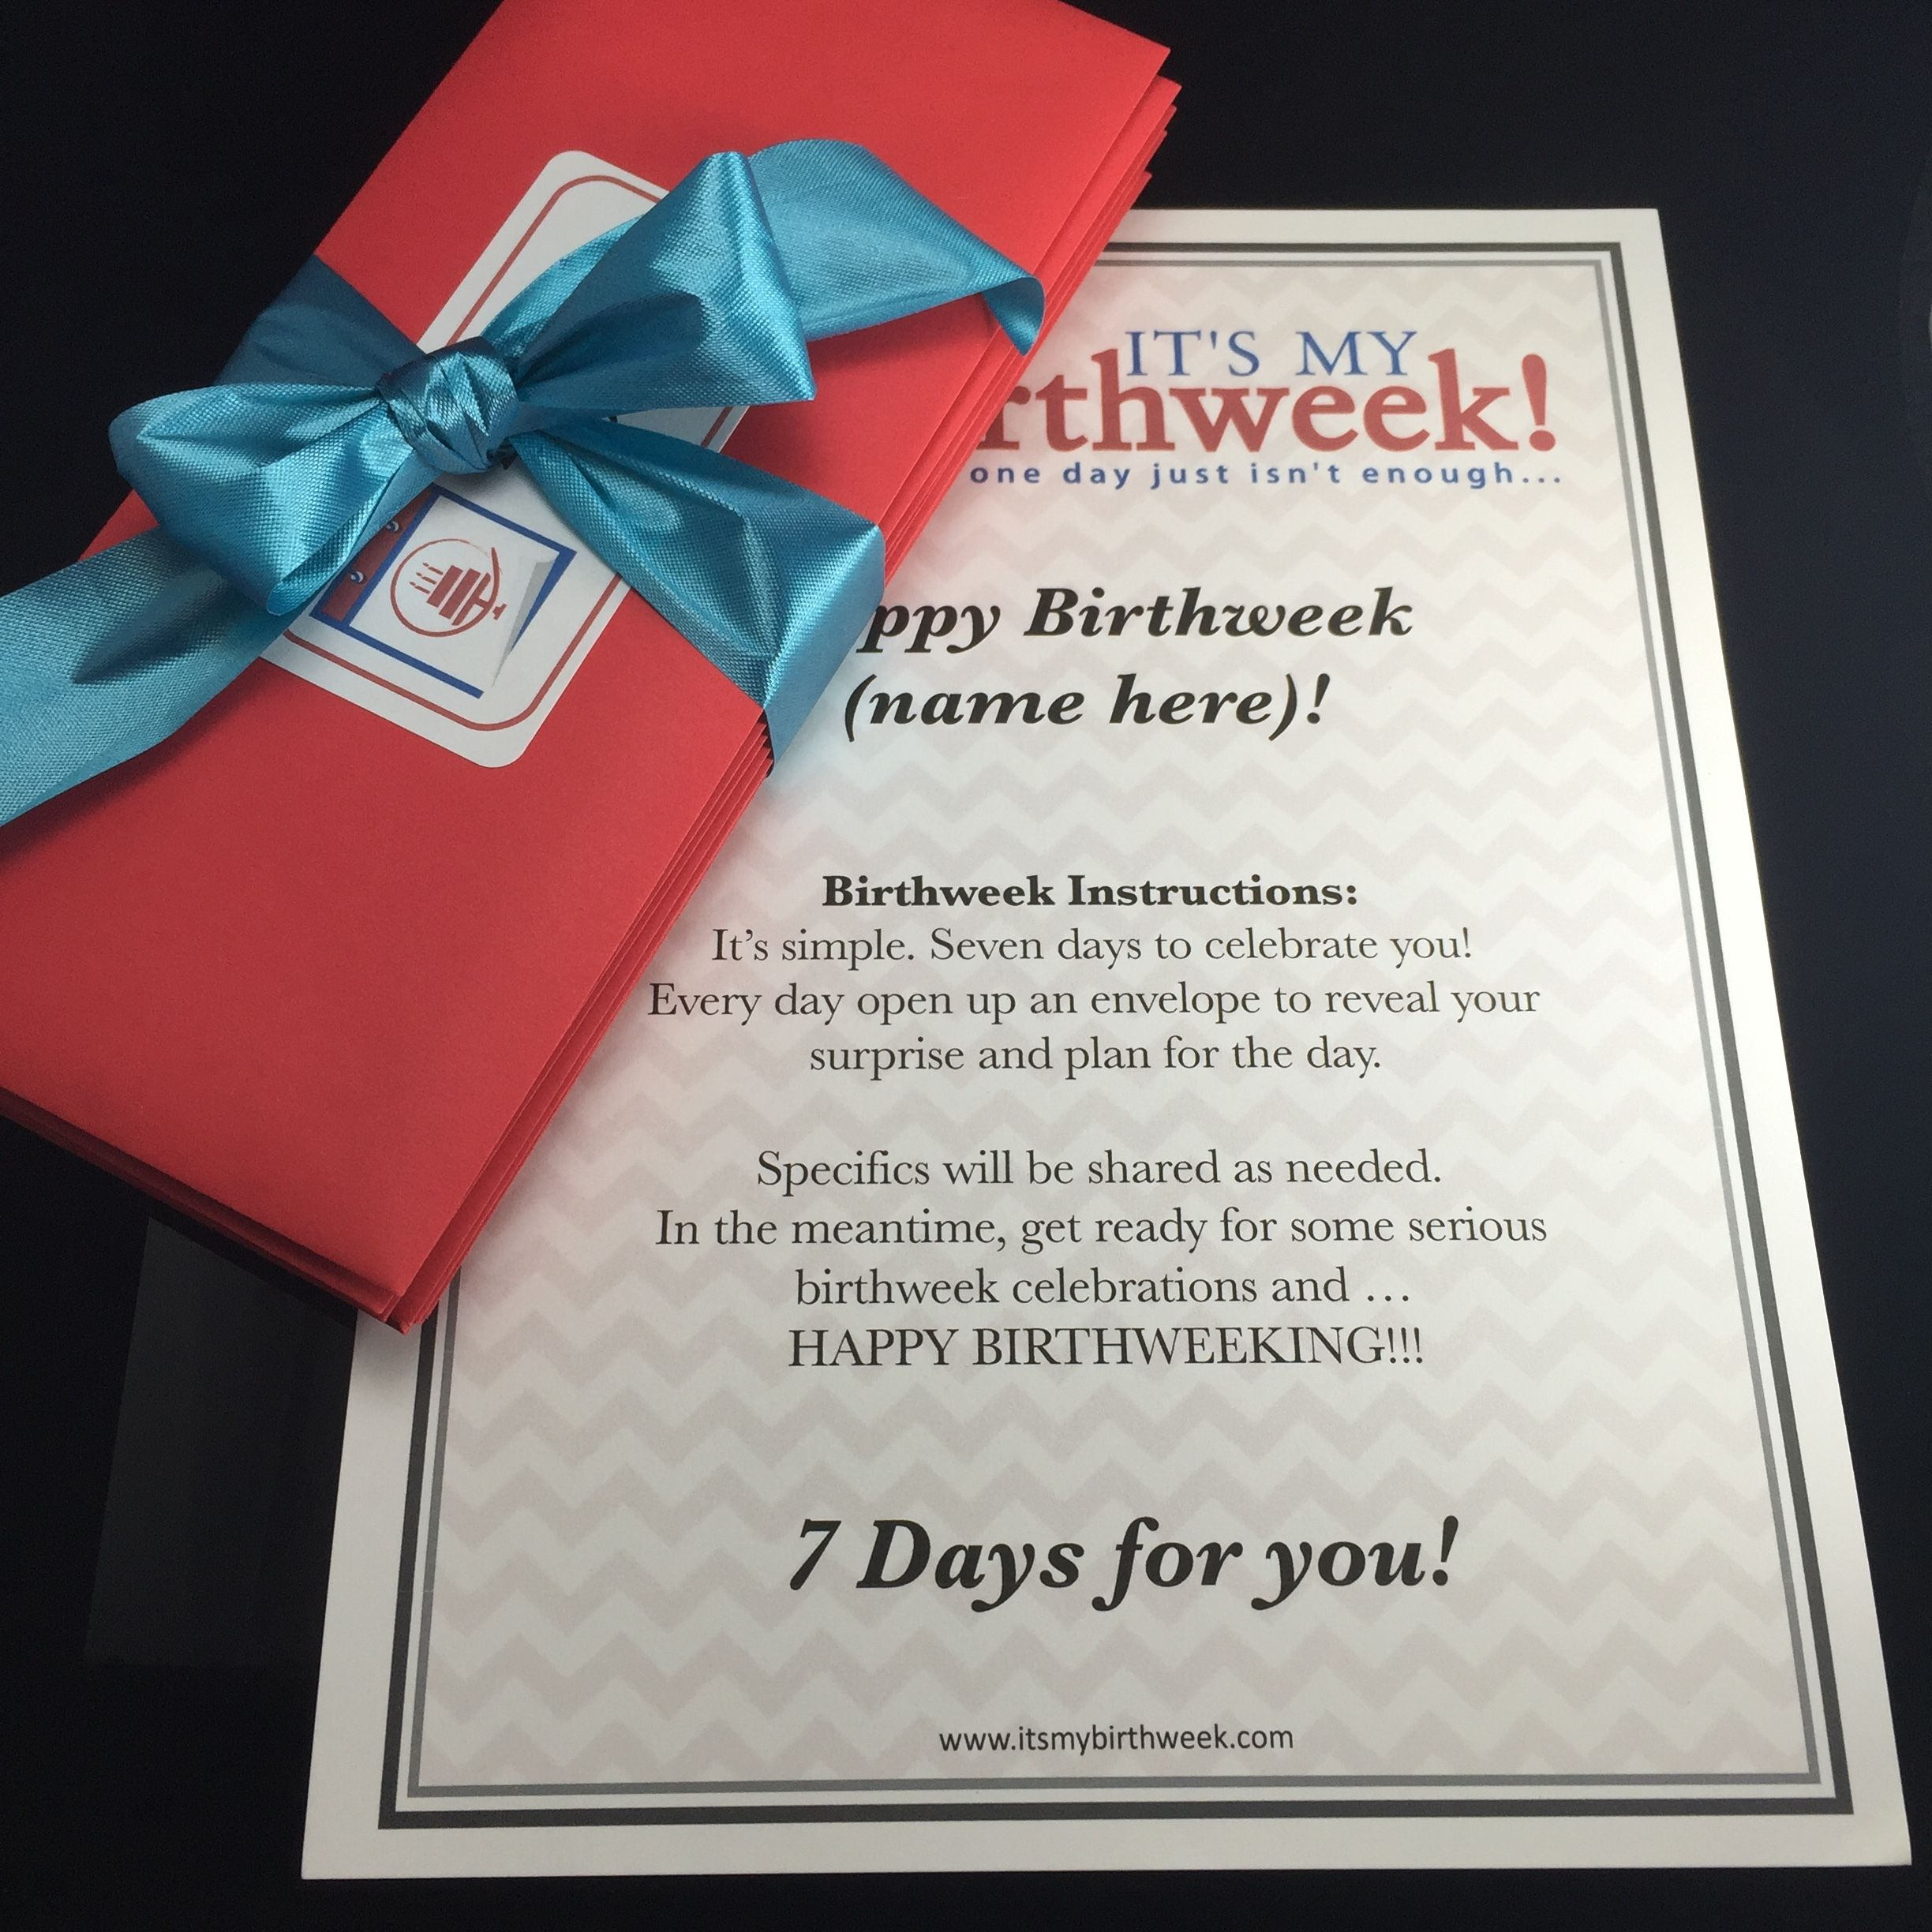 Birthweek Celebration Letters Delivered To Your Home 7 Day Unique